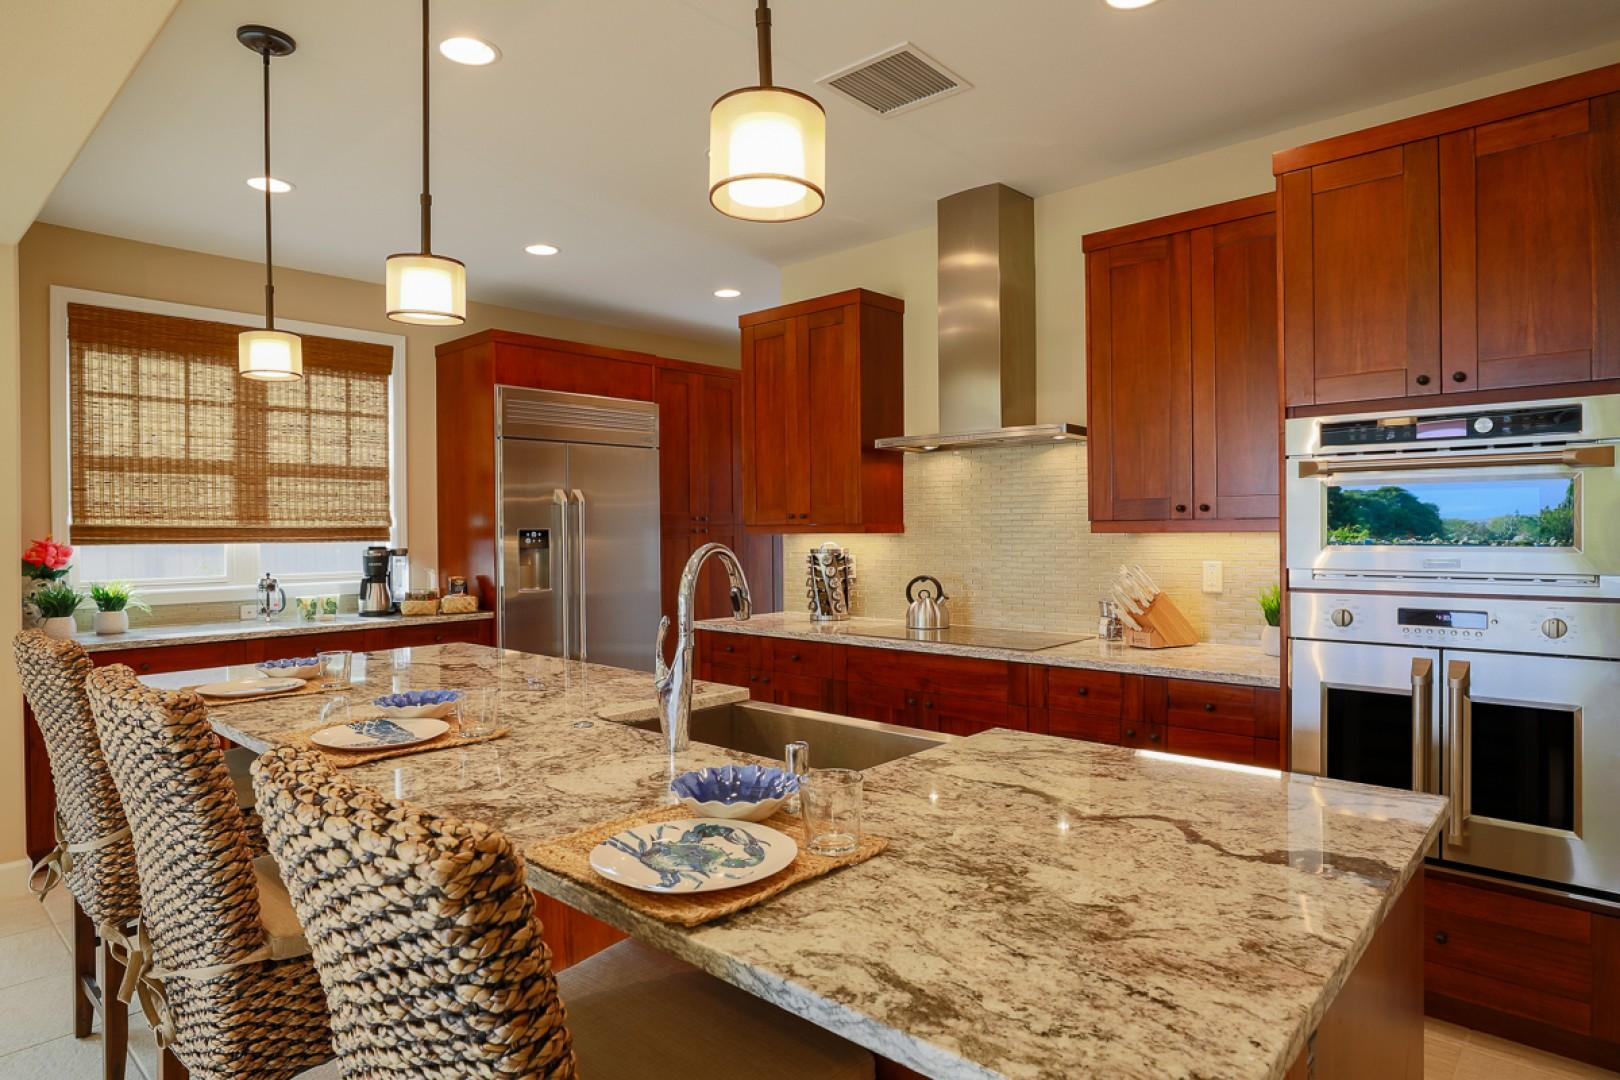 The kitchen has all the amenities your group needs